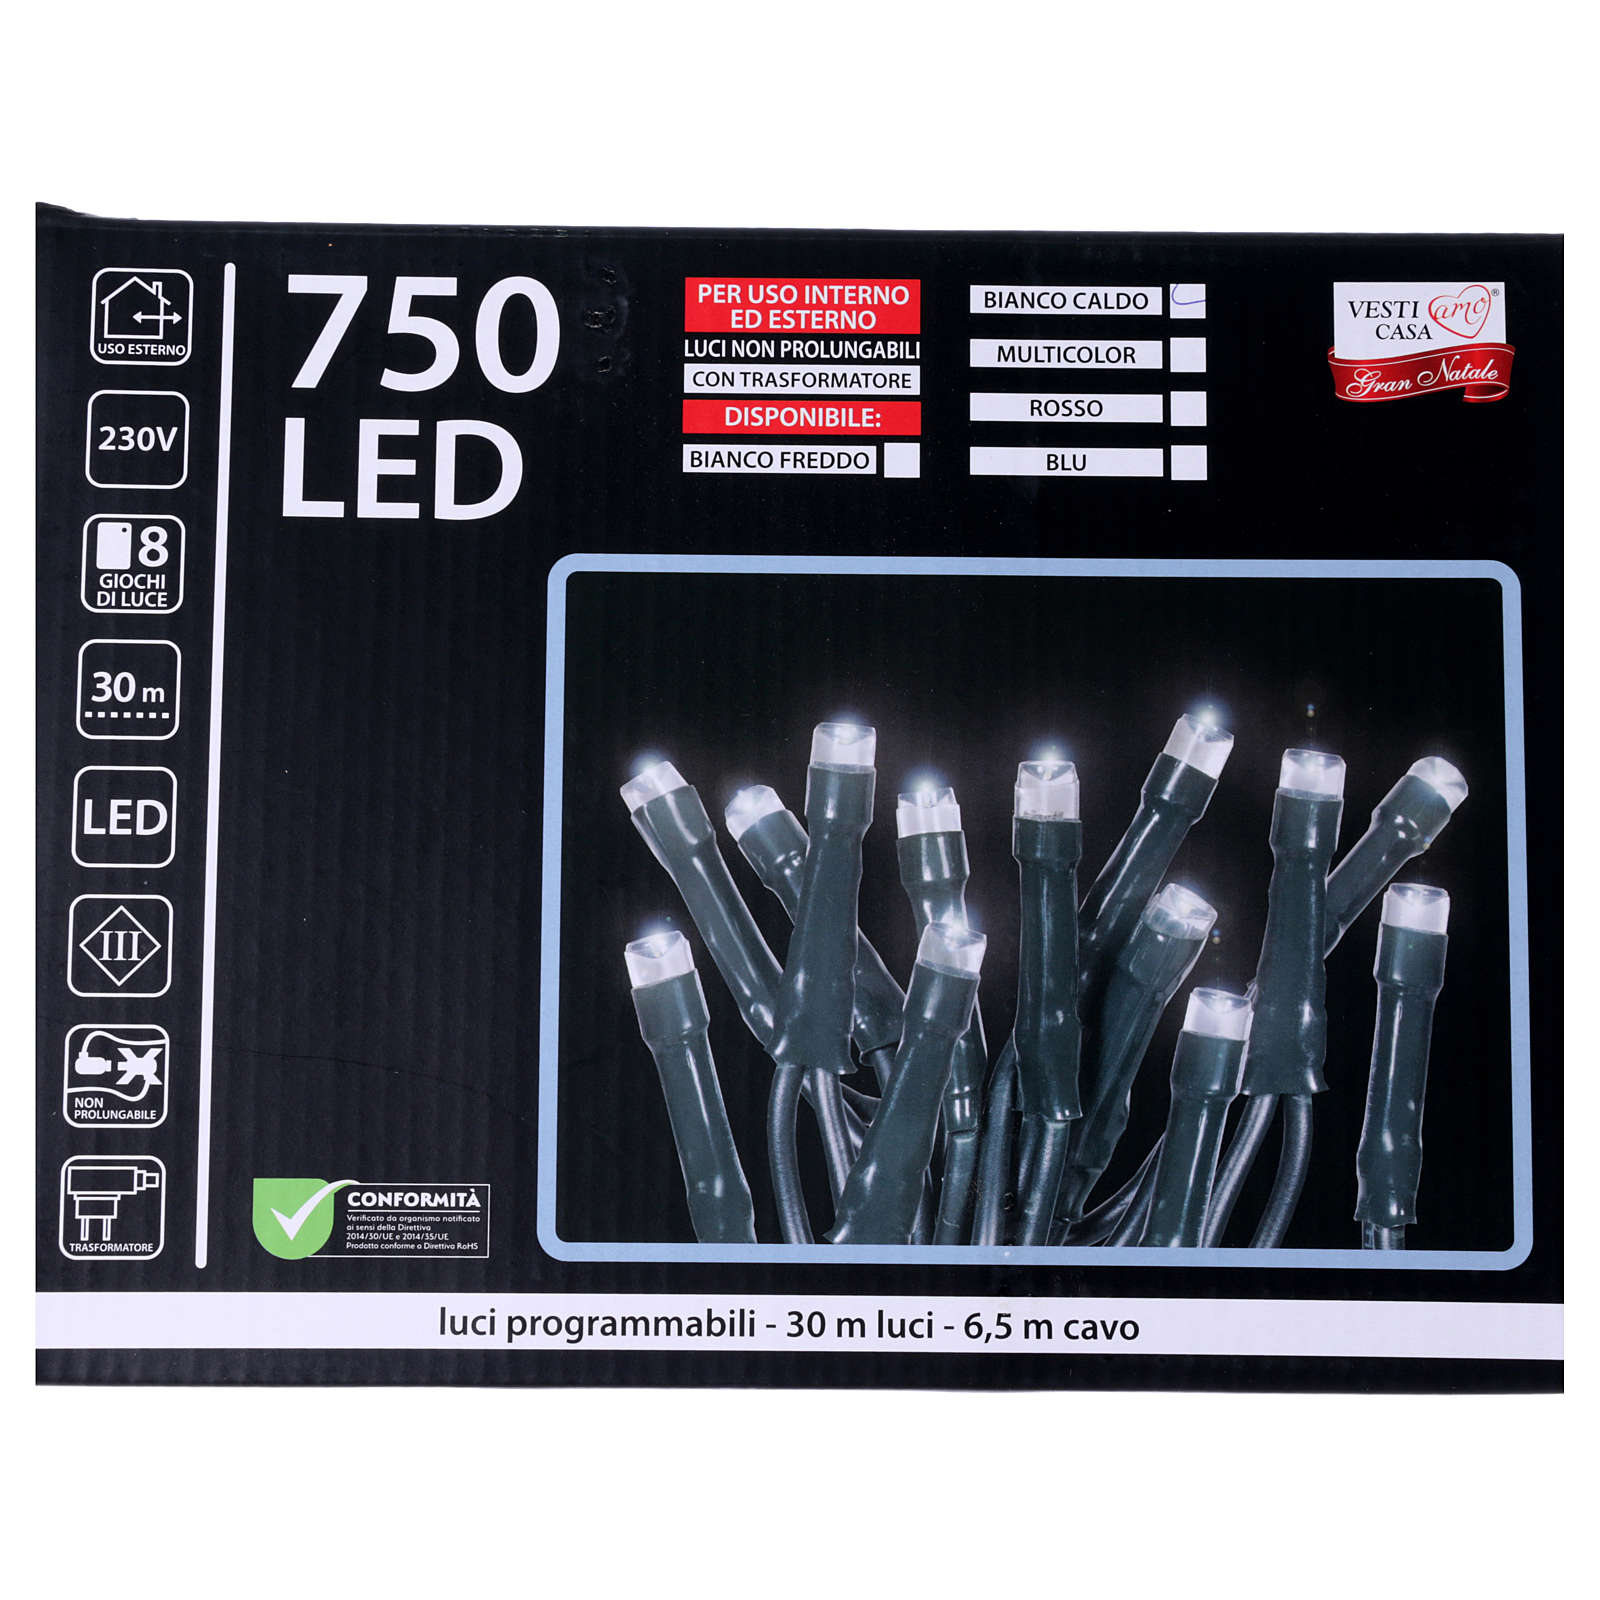 Christmas lights 750 LEDS warm white not programmable internal and external use 3